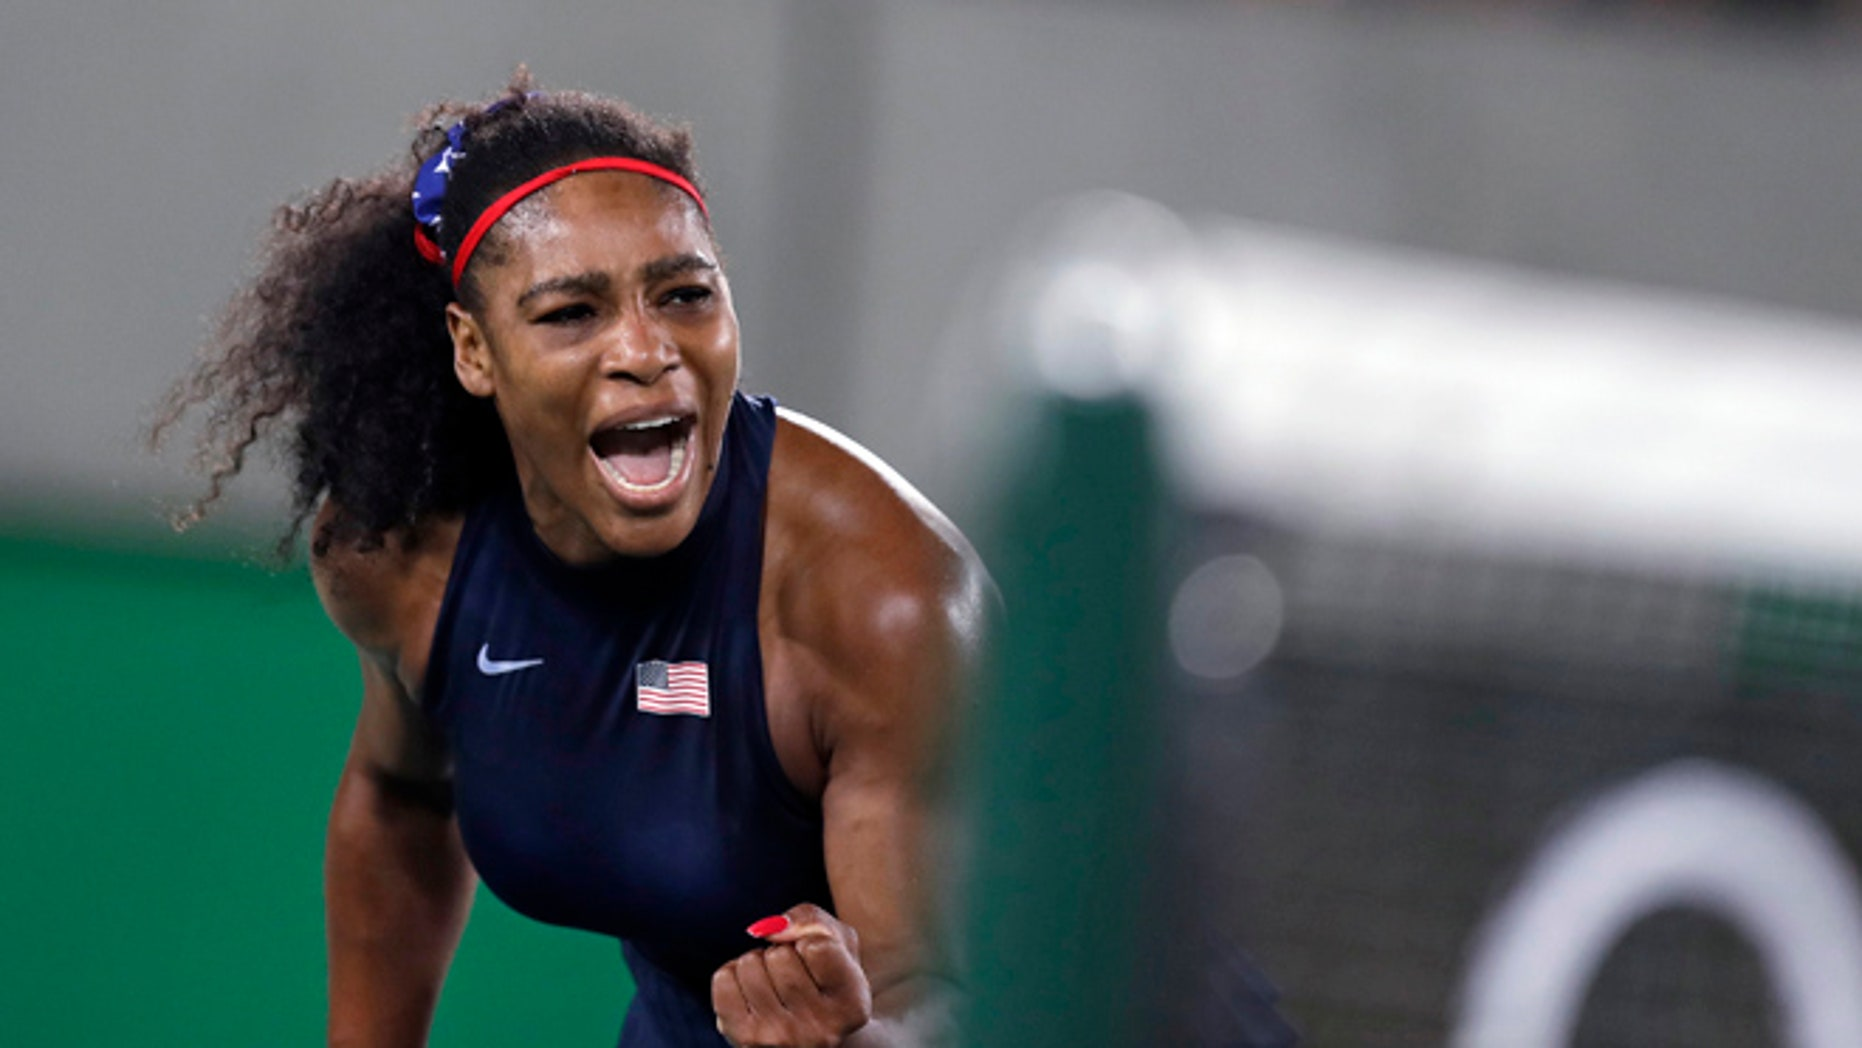 Serena Williams, of the United States, pumps her fist after winning a point at the net against Elina Svitolina, of Ukraine, at the 2016 Summer Olympics in Rio de Janeiro, Brazil, Tuesday, Aug. 9, 2016.